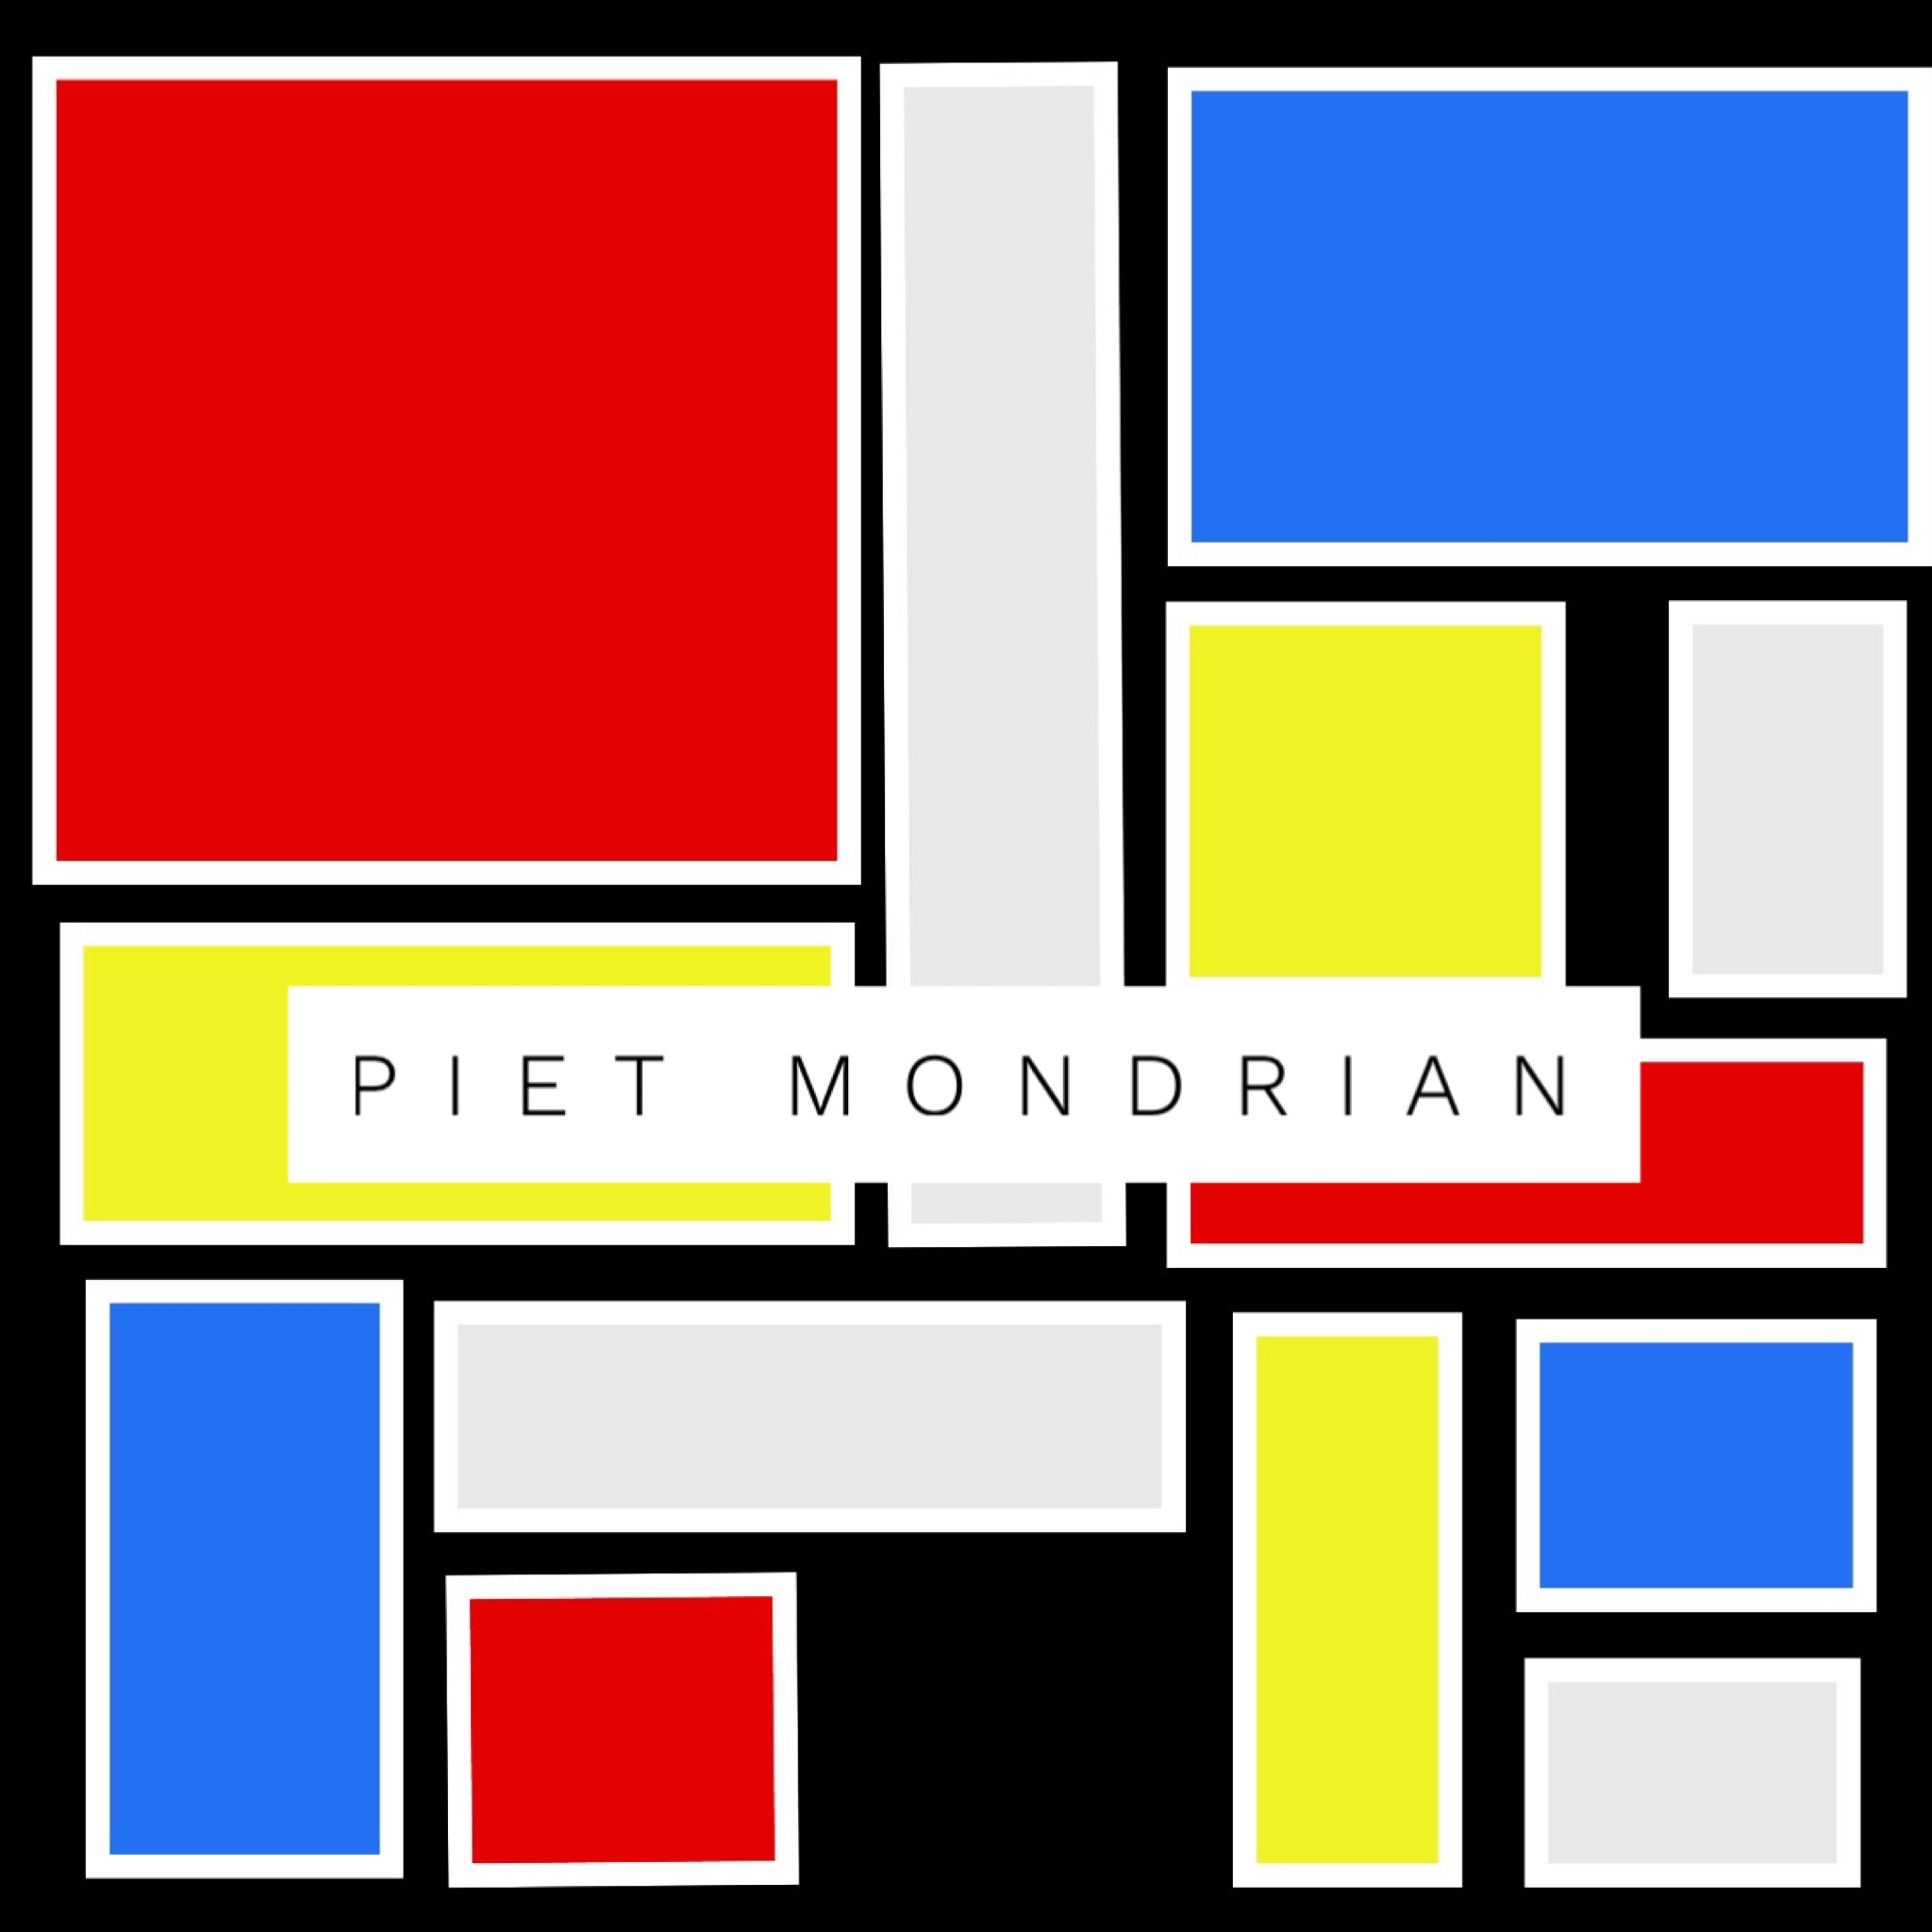 Piet Mondrian inspired art learning / lesson plans for kids. Come explore art learning plans for preschool and elementary age children. Children will learn Elements of Art, Principles of Design while having the freedom of creative expression.